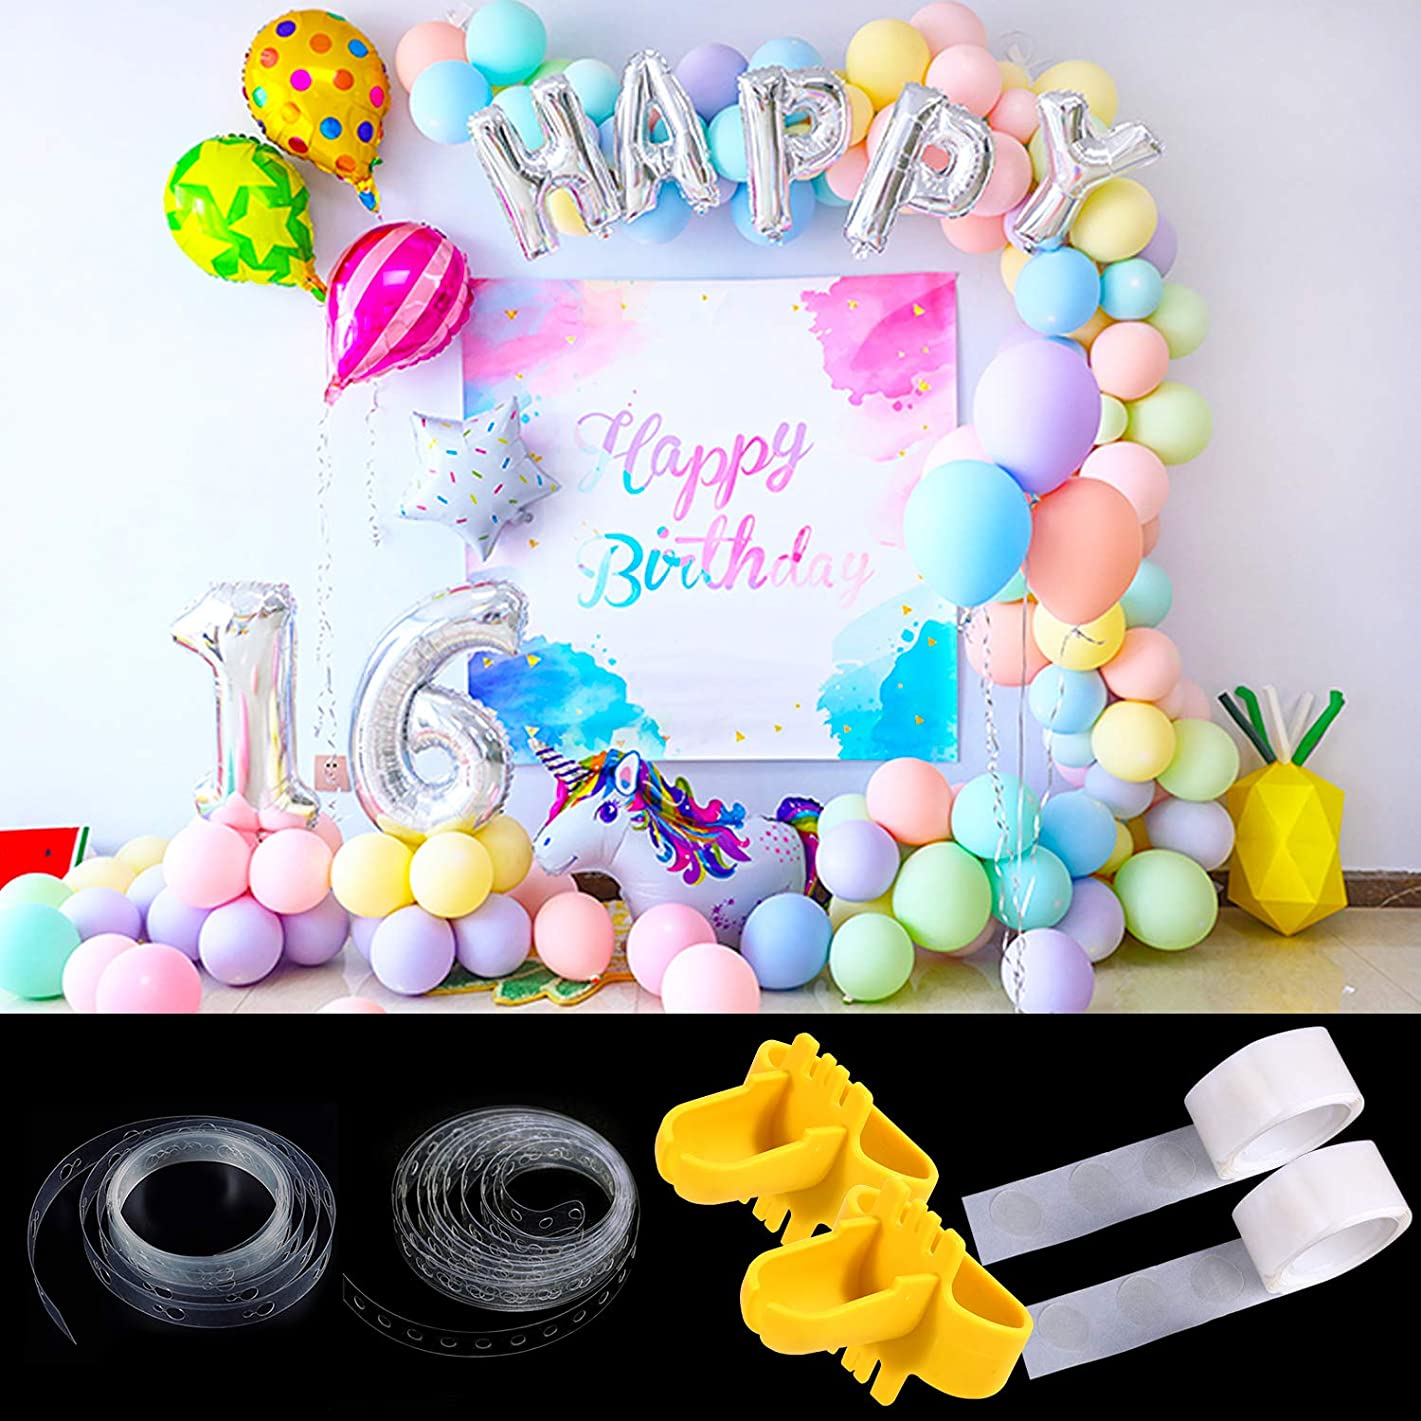 NXGEN Balloon Arch Garland Decorating Strip Kit 2 Rolls 32 Feet Balloon Tape Strips with 2 Rolls Balloon Glue Point Dots Stickers (Tying Tool Sent Randomly)